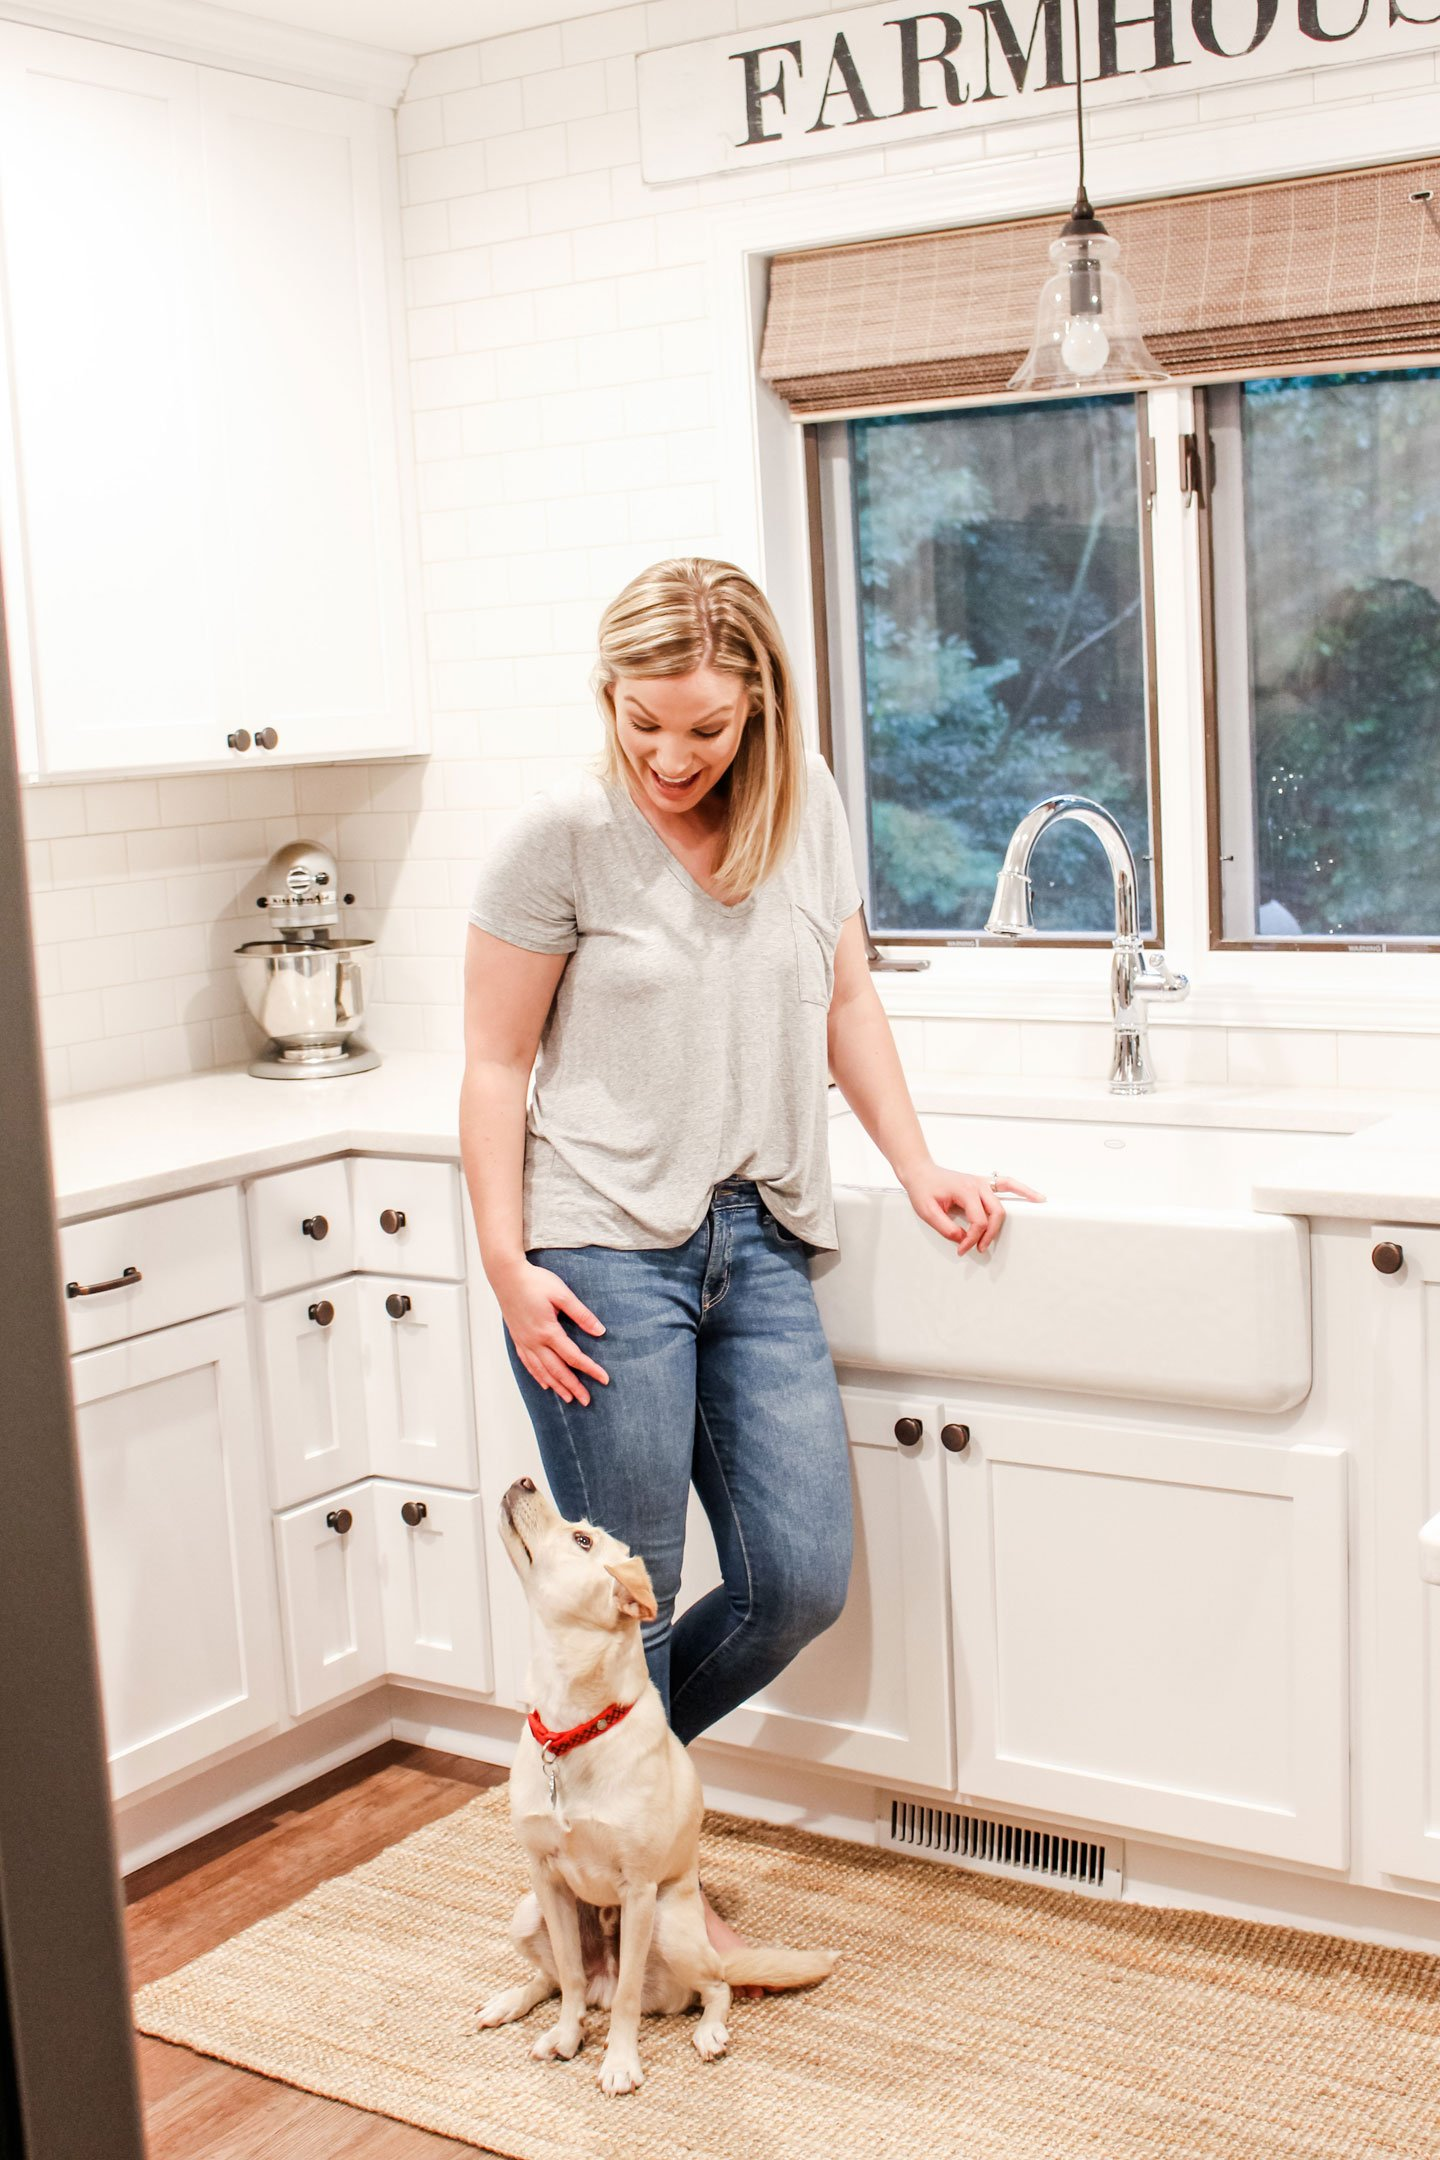 house project plans 2020 - modern farmhouse kitchen - what karly said